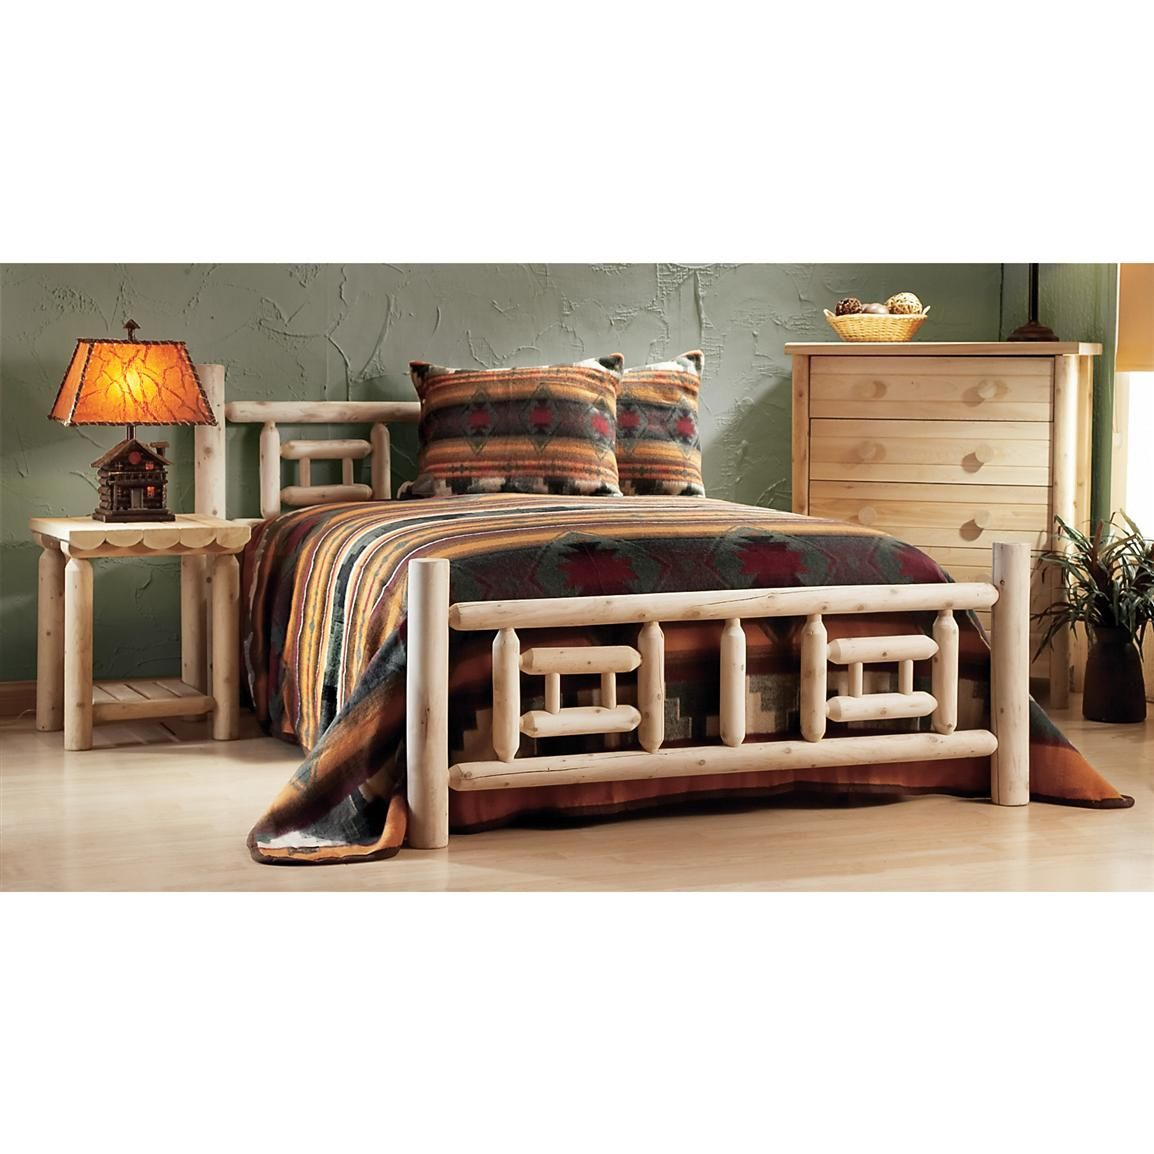 Rustic Natural Cedar Furniture Pinned Www